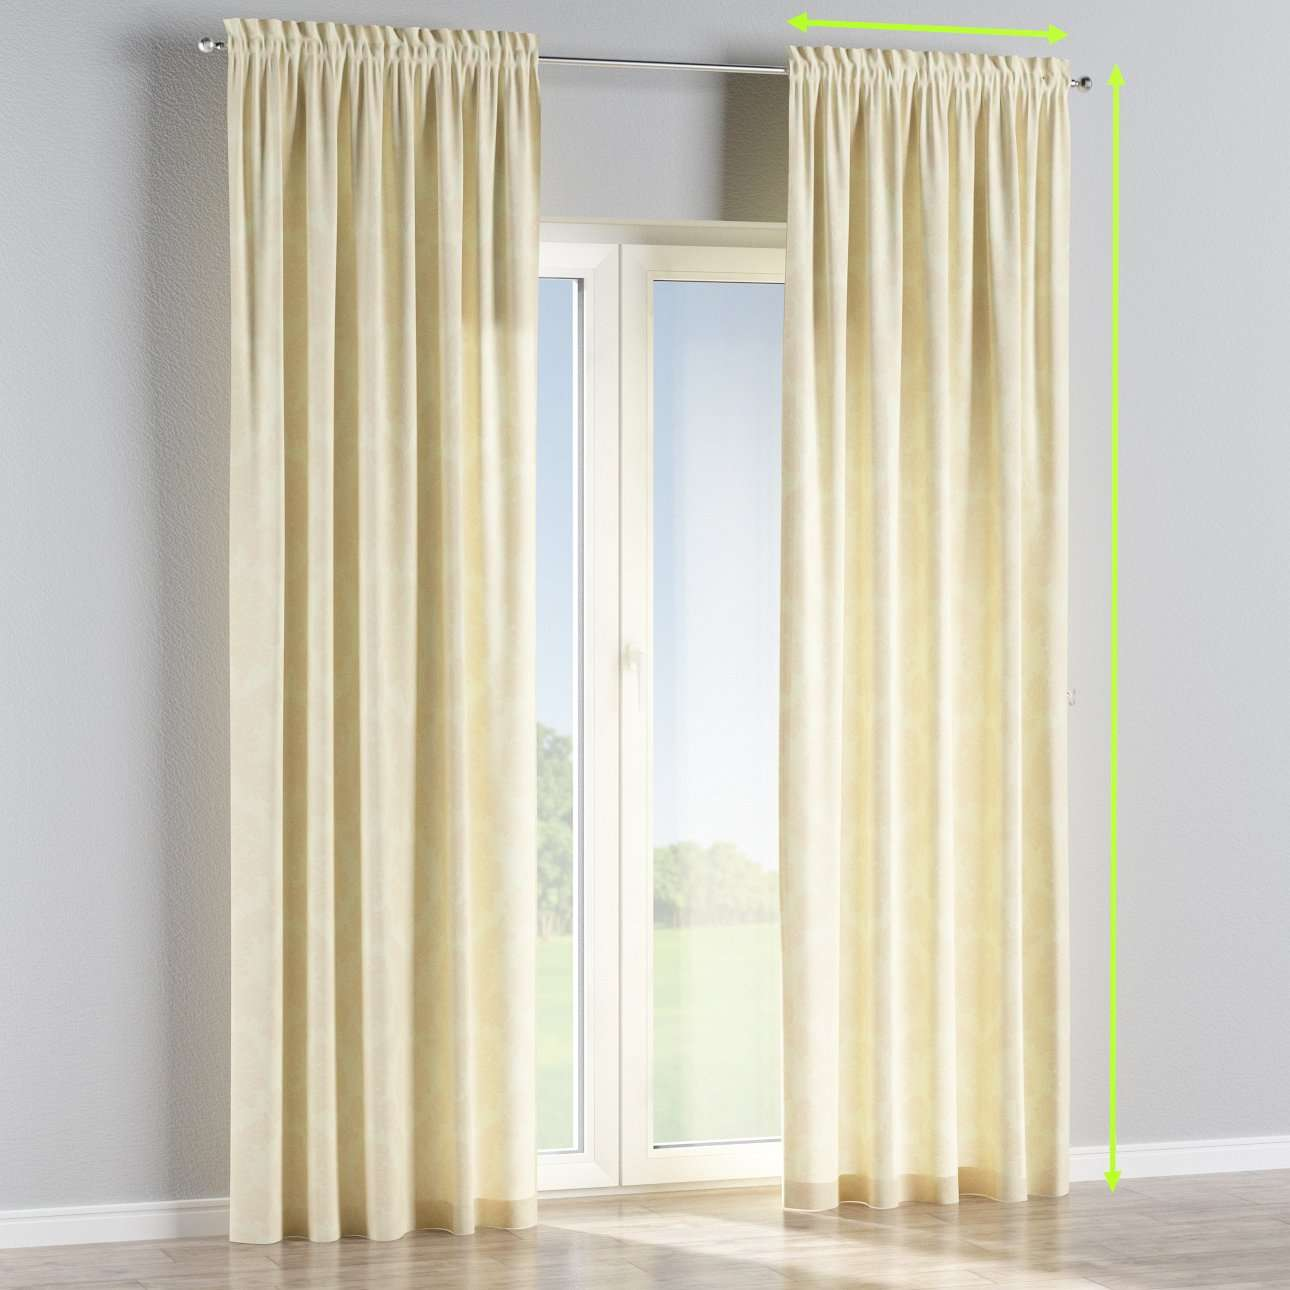 Slot and frill curtains in collection Damasco, fabric: 613-01